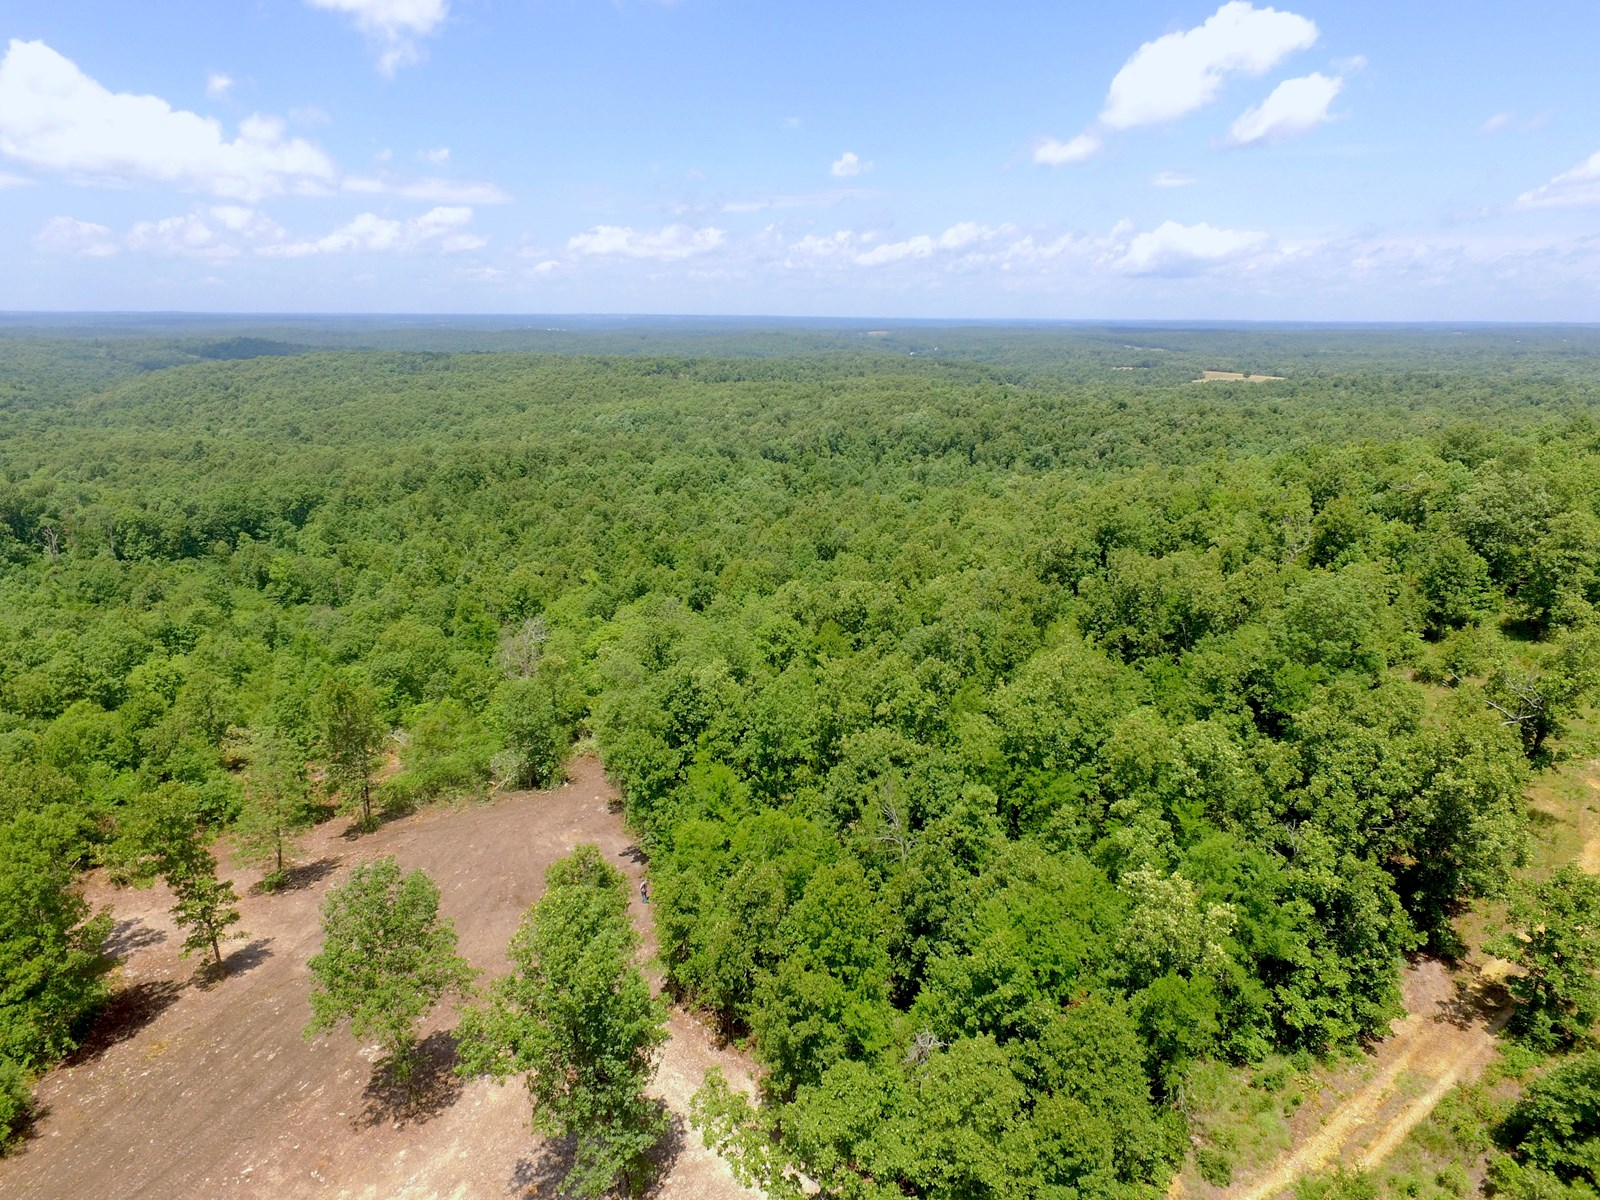 Land for Sale in Arkansas with Great Views